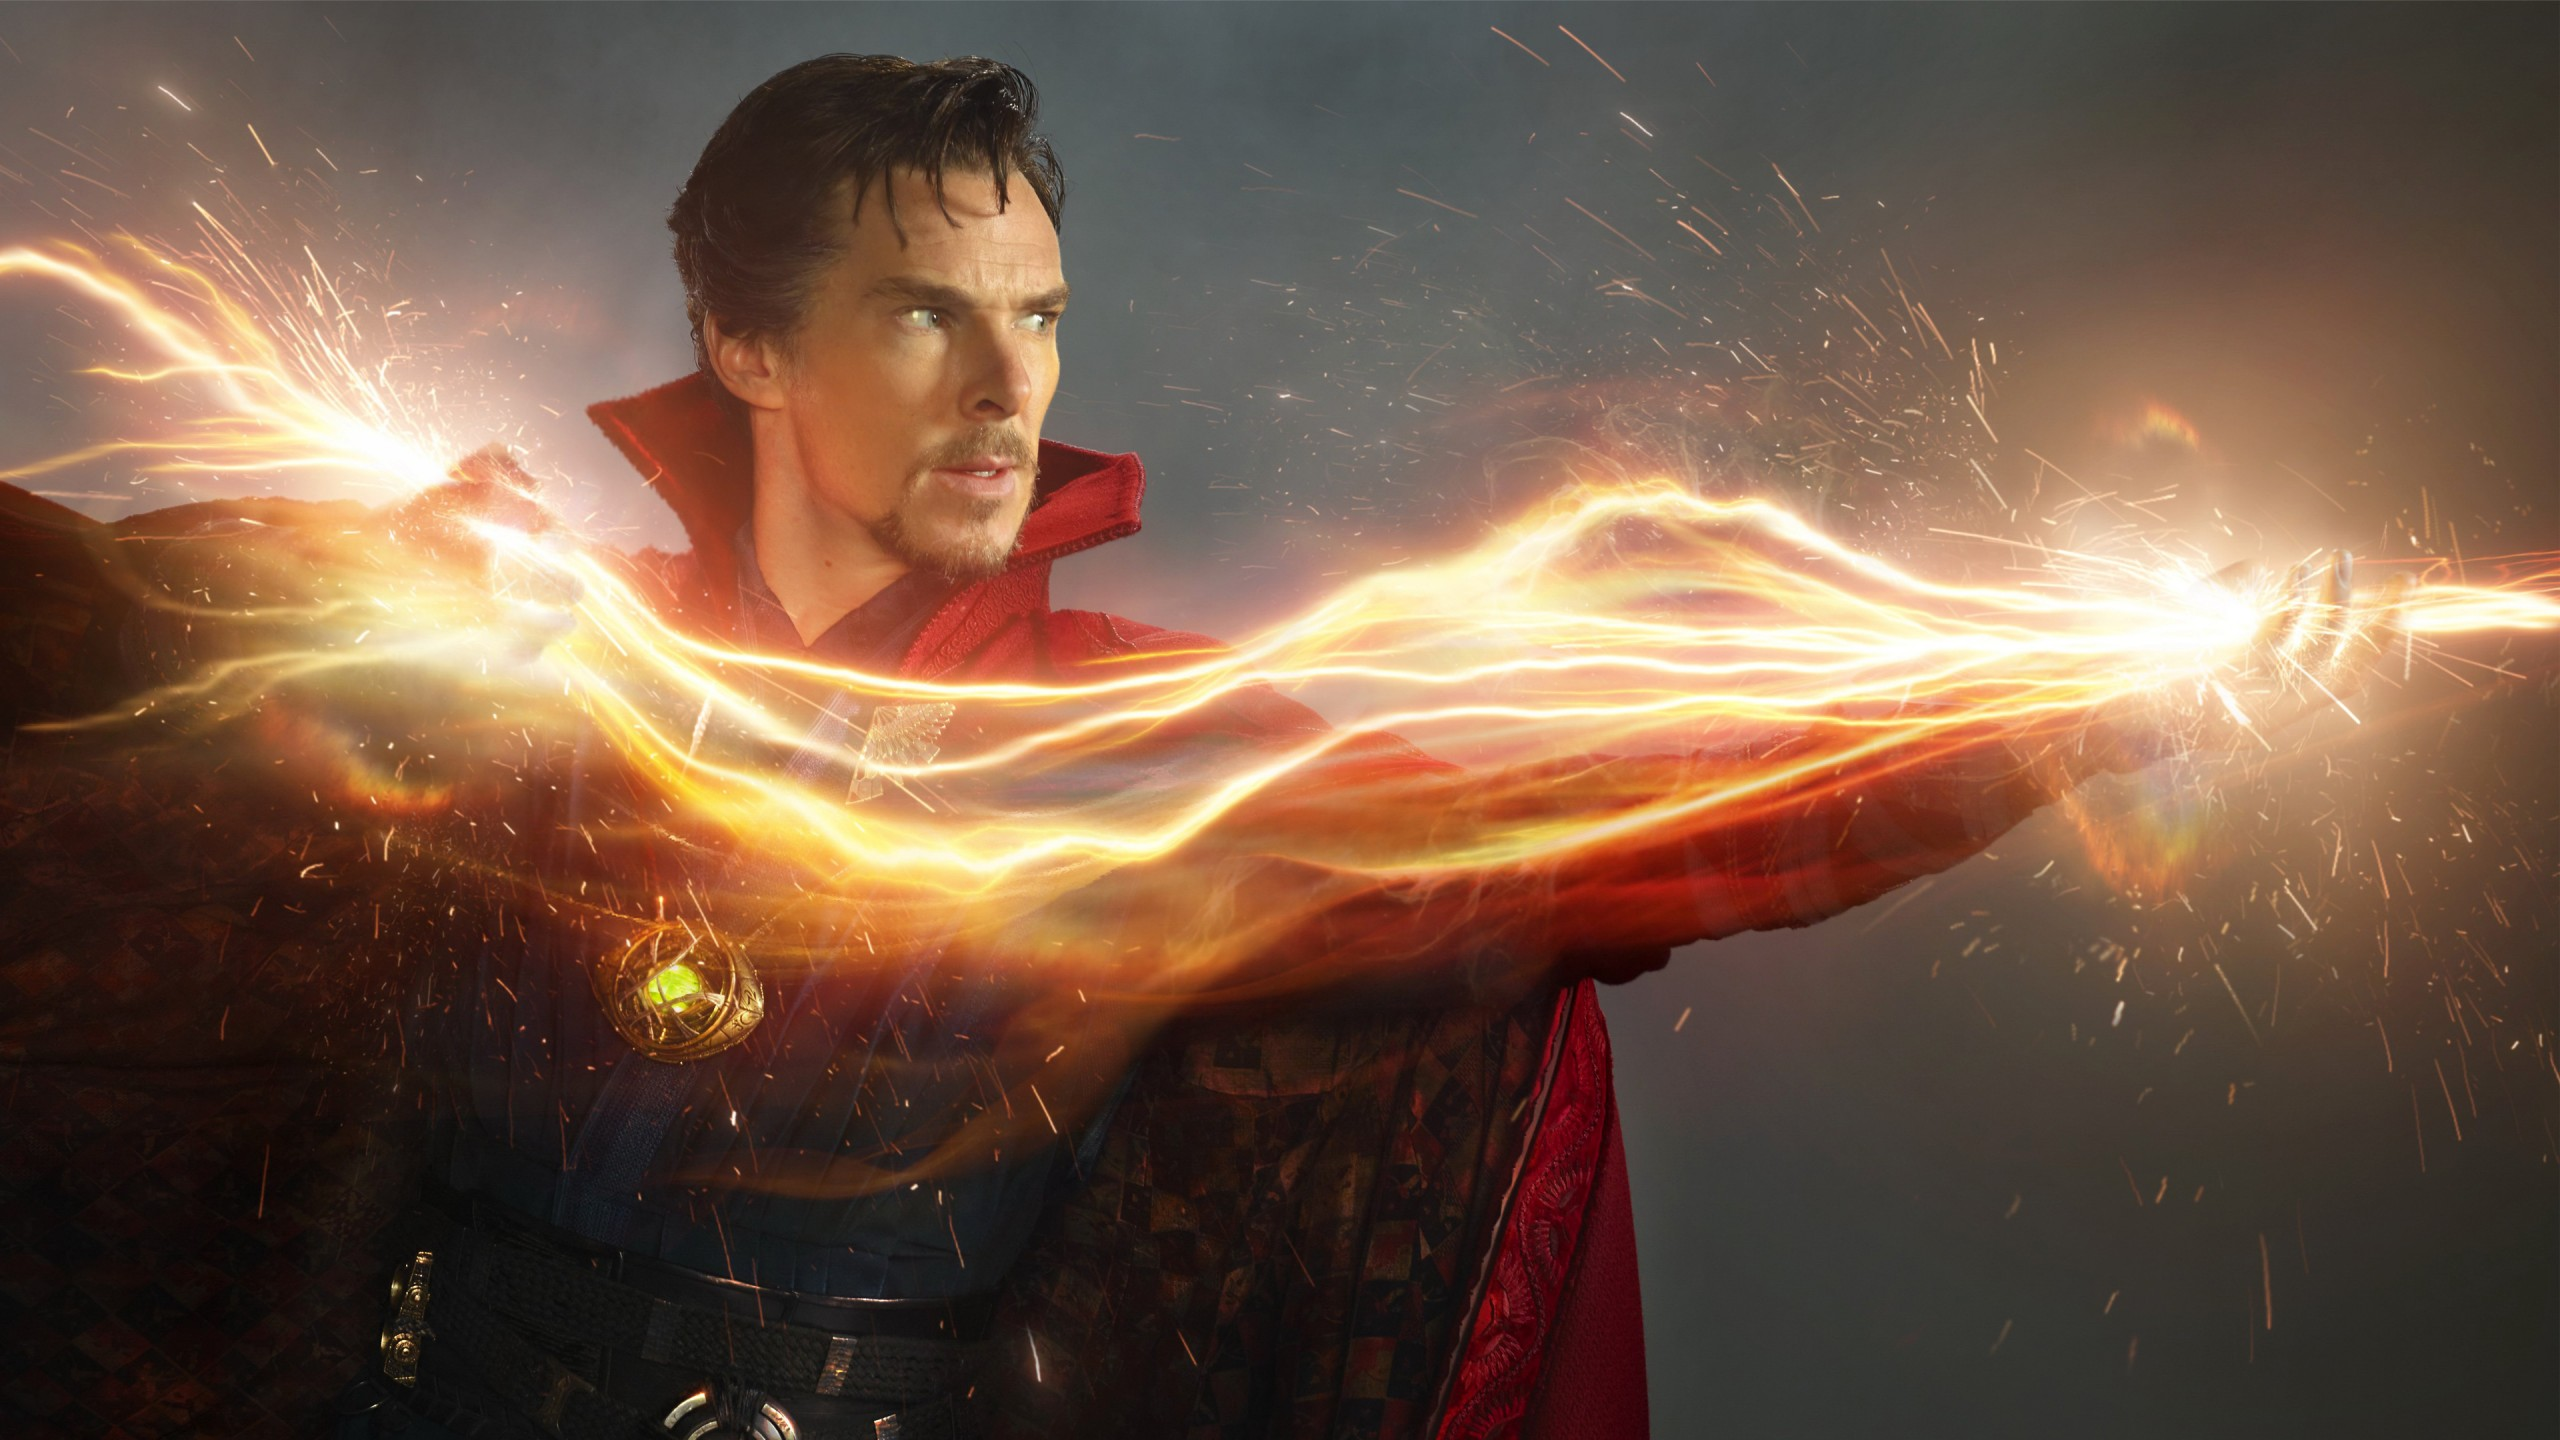 Superhero Hd Wallpapers Iphone Doctor Strange Benedict Cumberbatch Wallpapers Hd